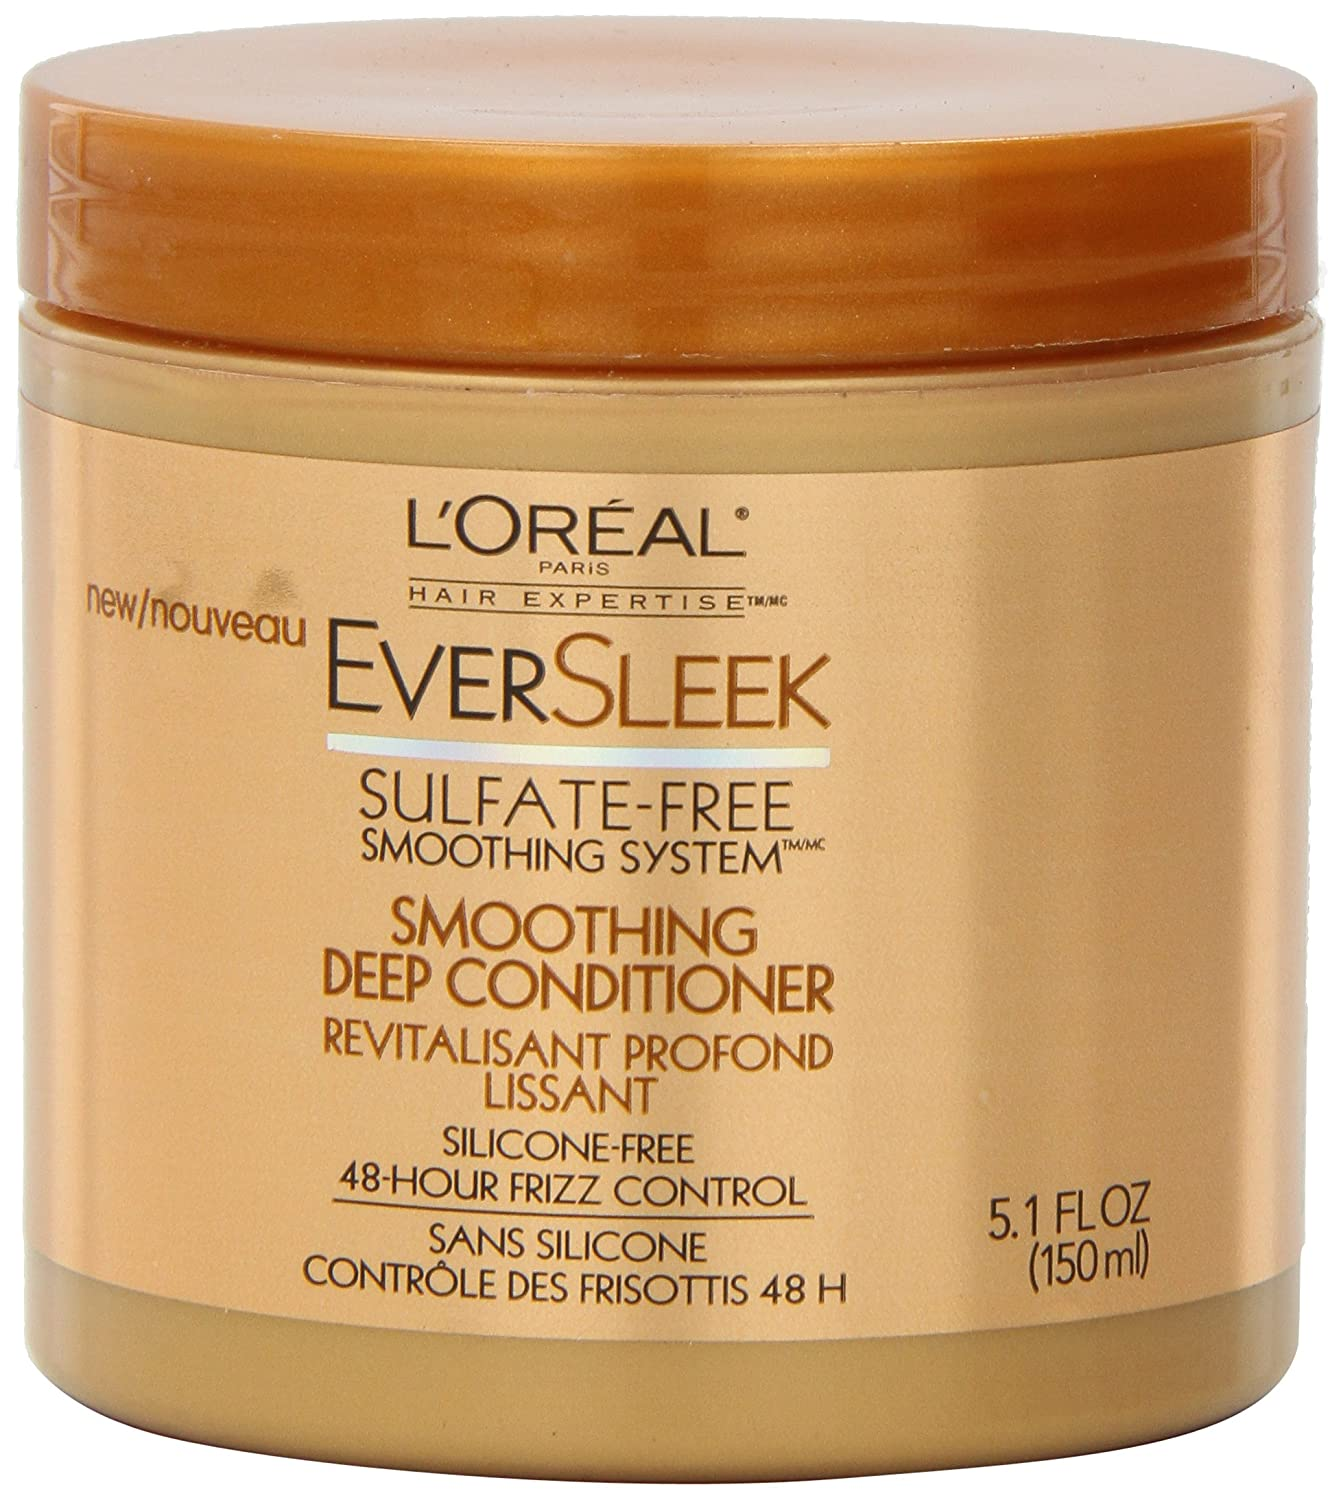 L'Oreal Paris EverSleek Sulfate-Free Smoothing System Smoothing Deep Conditioner, 5.1 Fluid Ounce L' Oreal Paris Hair Care K0902900